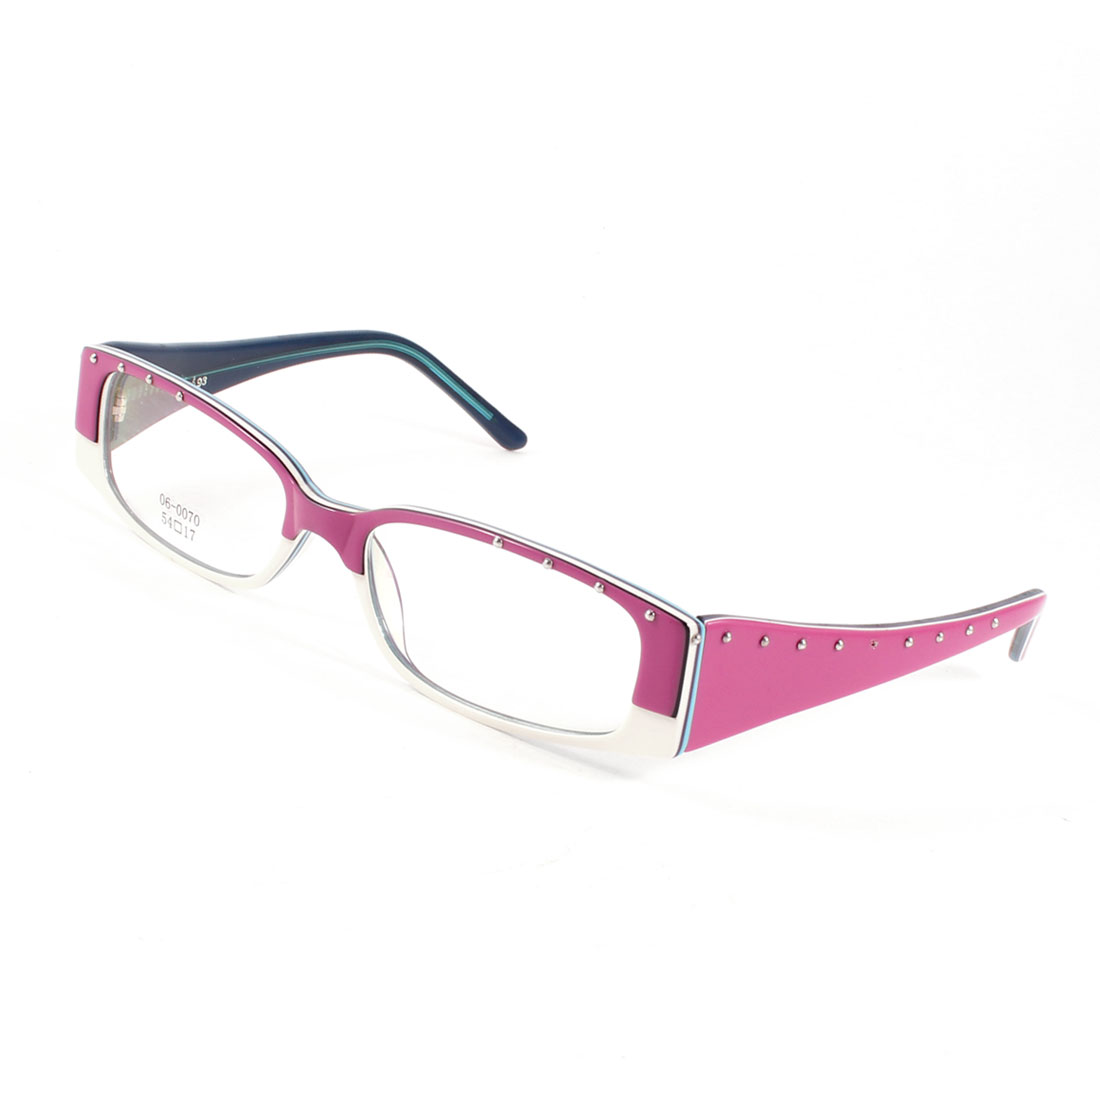 Plastic Arms MC Lens Spectacles Plano Glasses Pink White for Lady Women